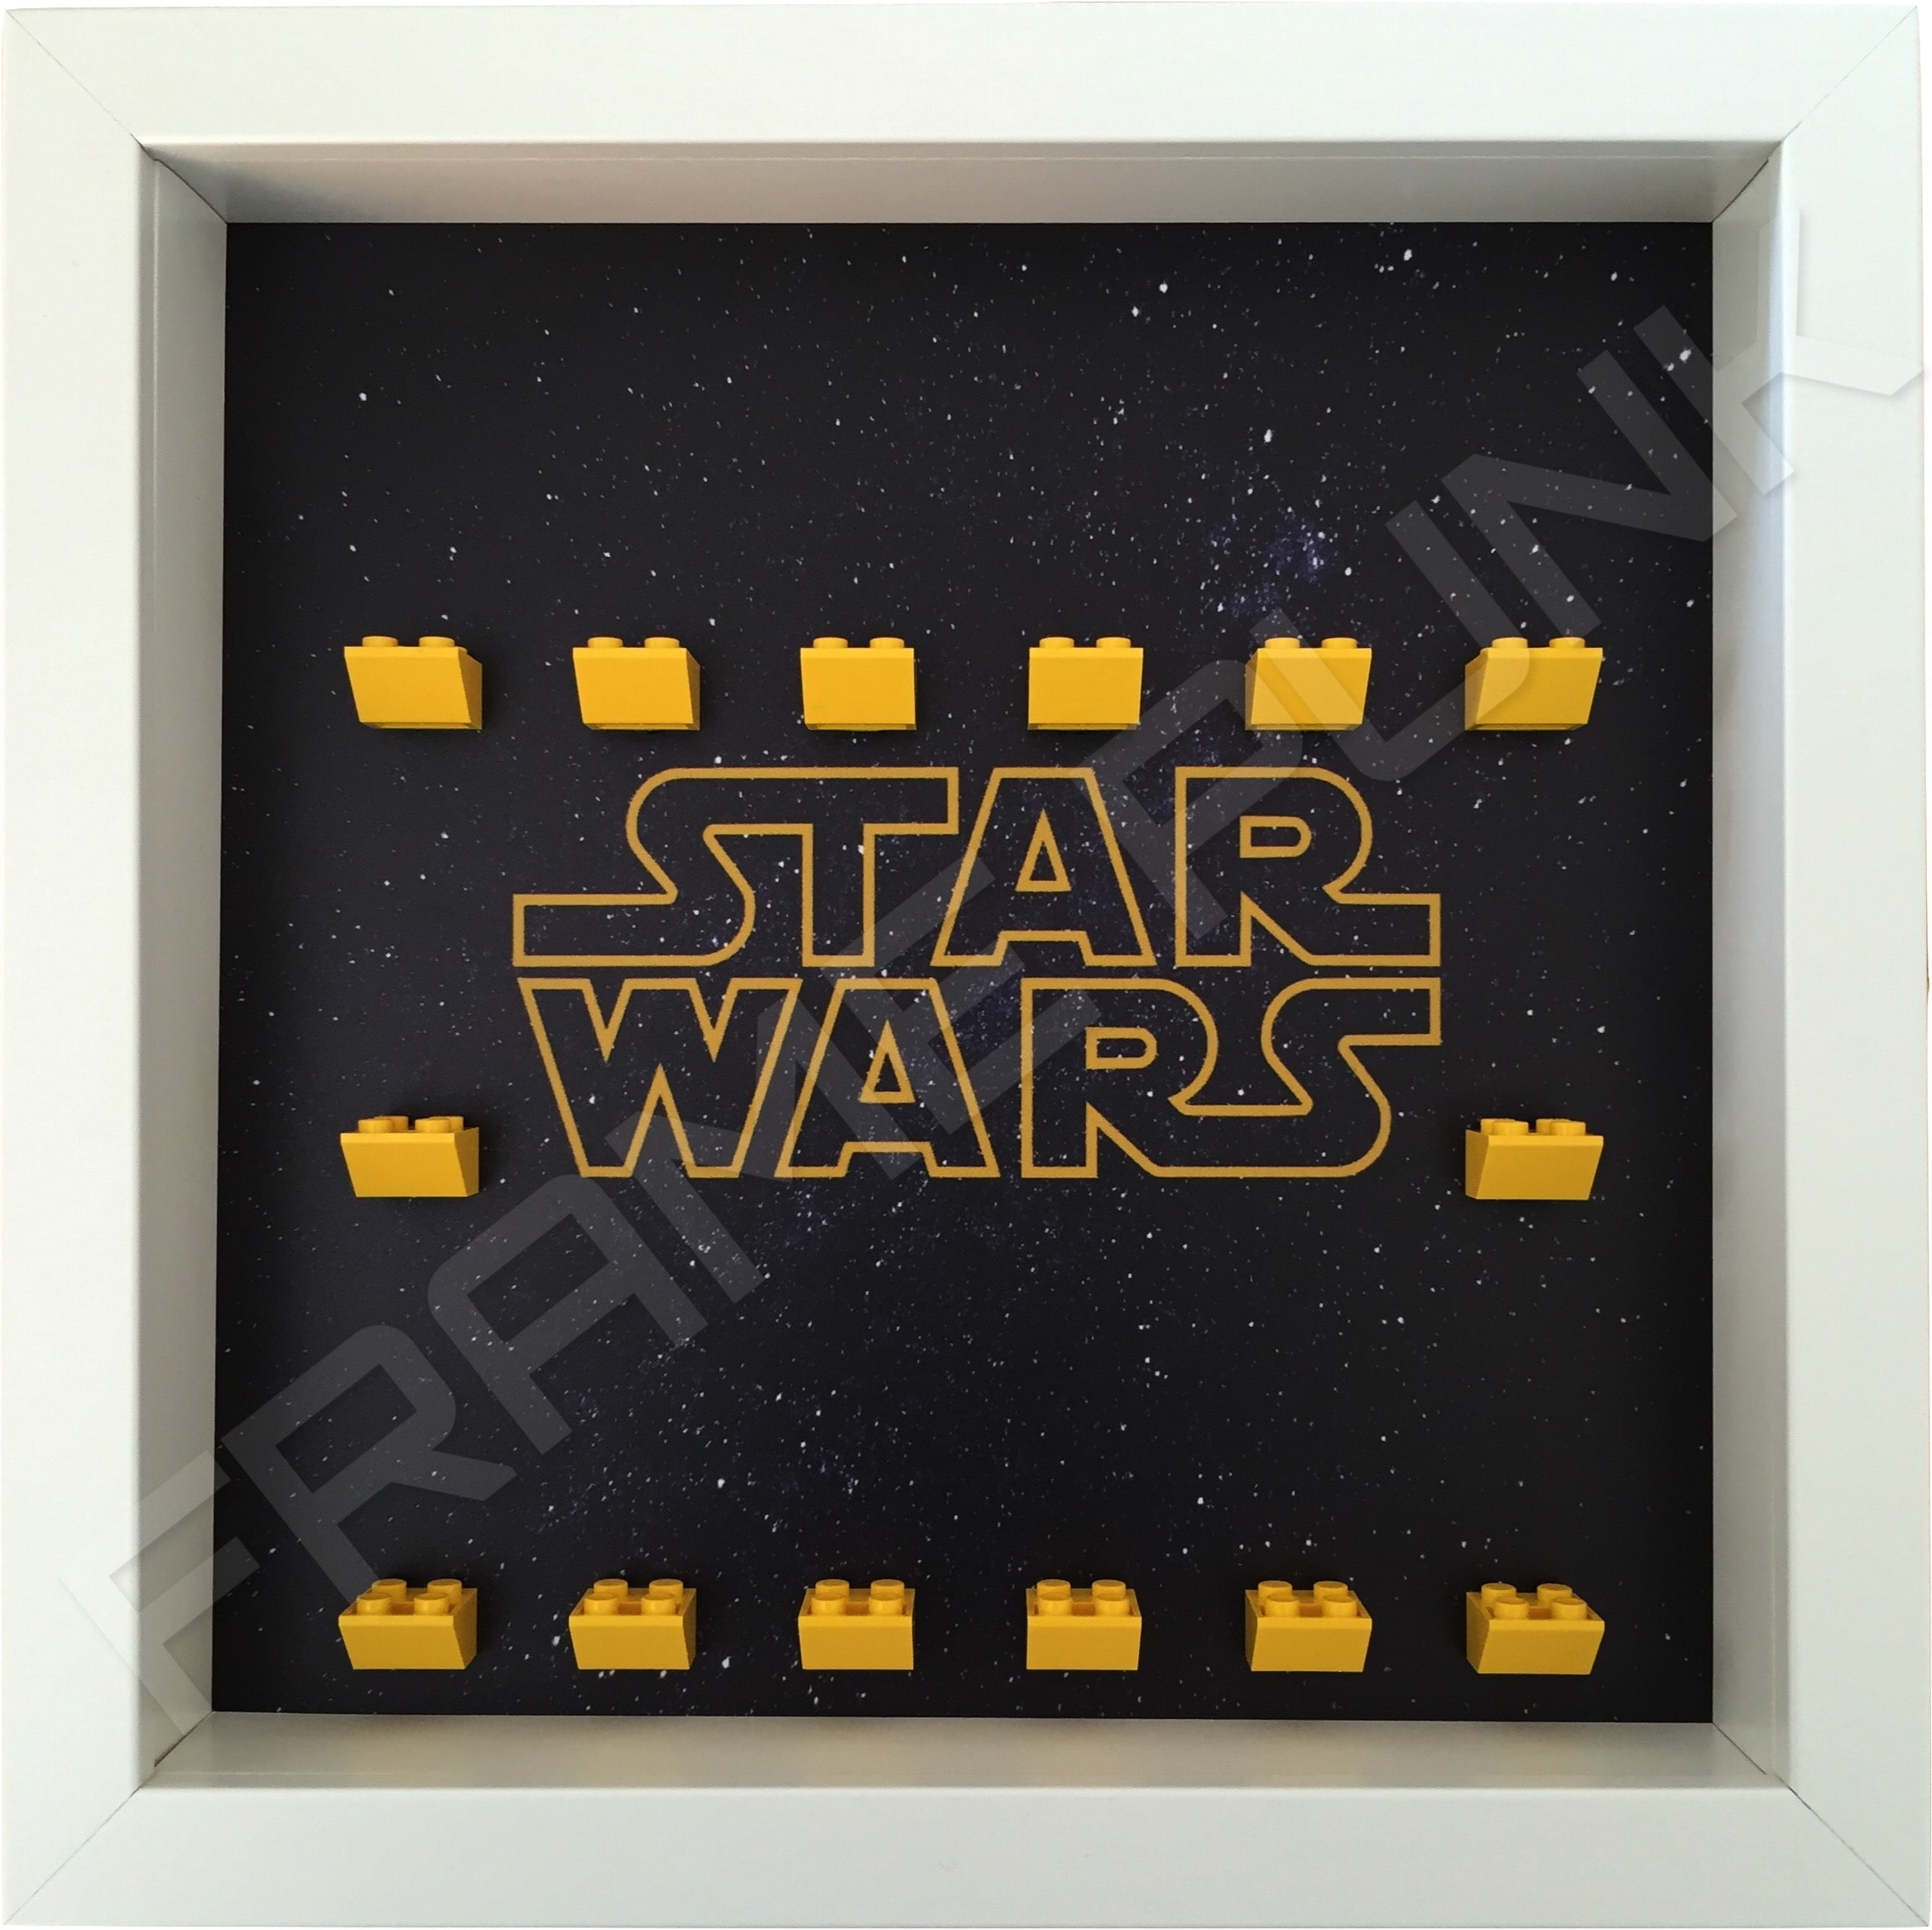 Star Wars White Frame minifigures display